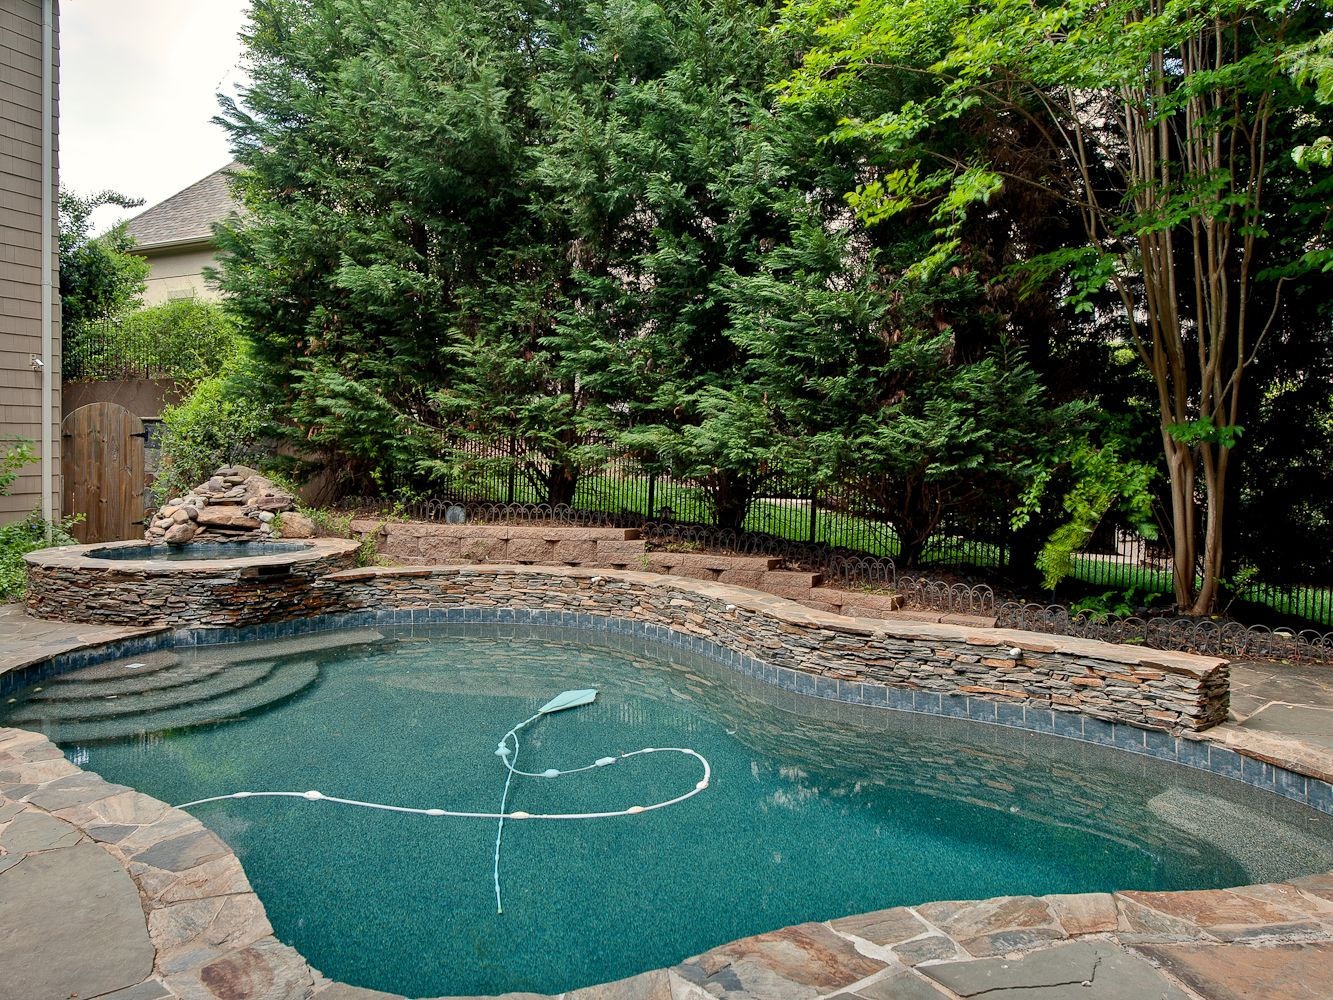 Pool & Landscape - Before | Pool landscaping, Dream pools ... on Dream Backyard With Pool id=22444